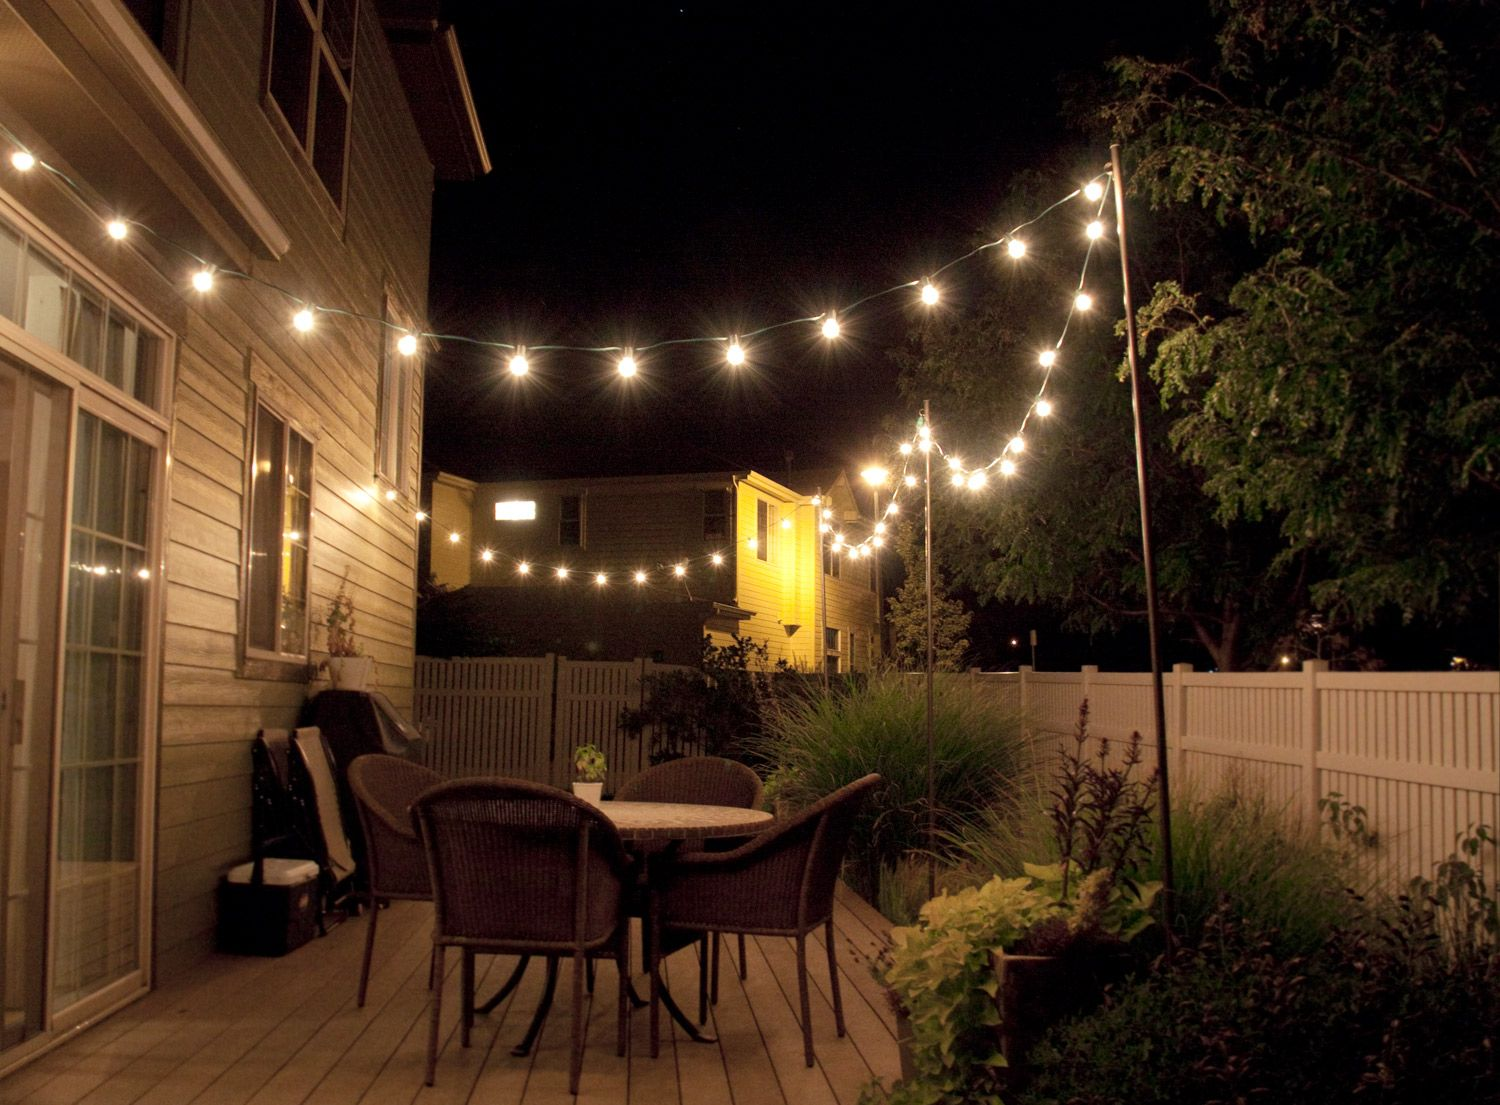 outside patio lighting ideas. Outdoor Patio Lighting Ideas Diy. 26 Breathtaking Yard And String Will, Outside O